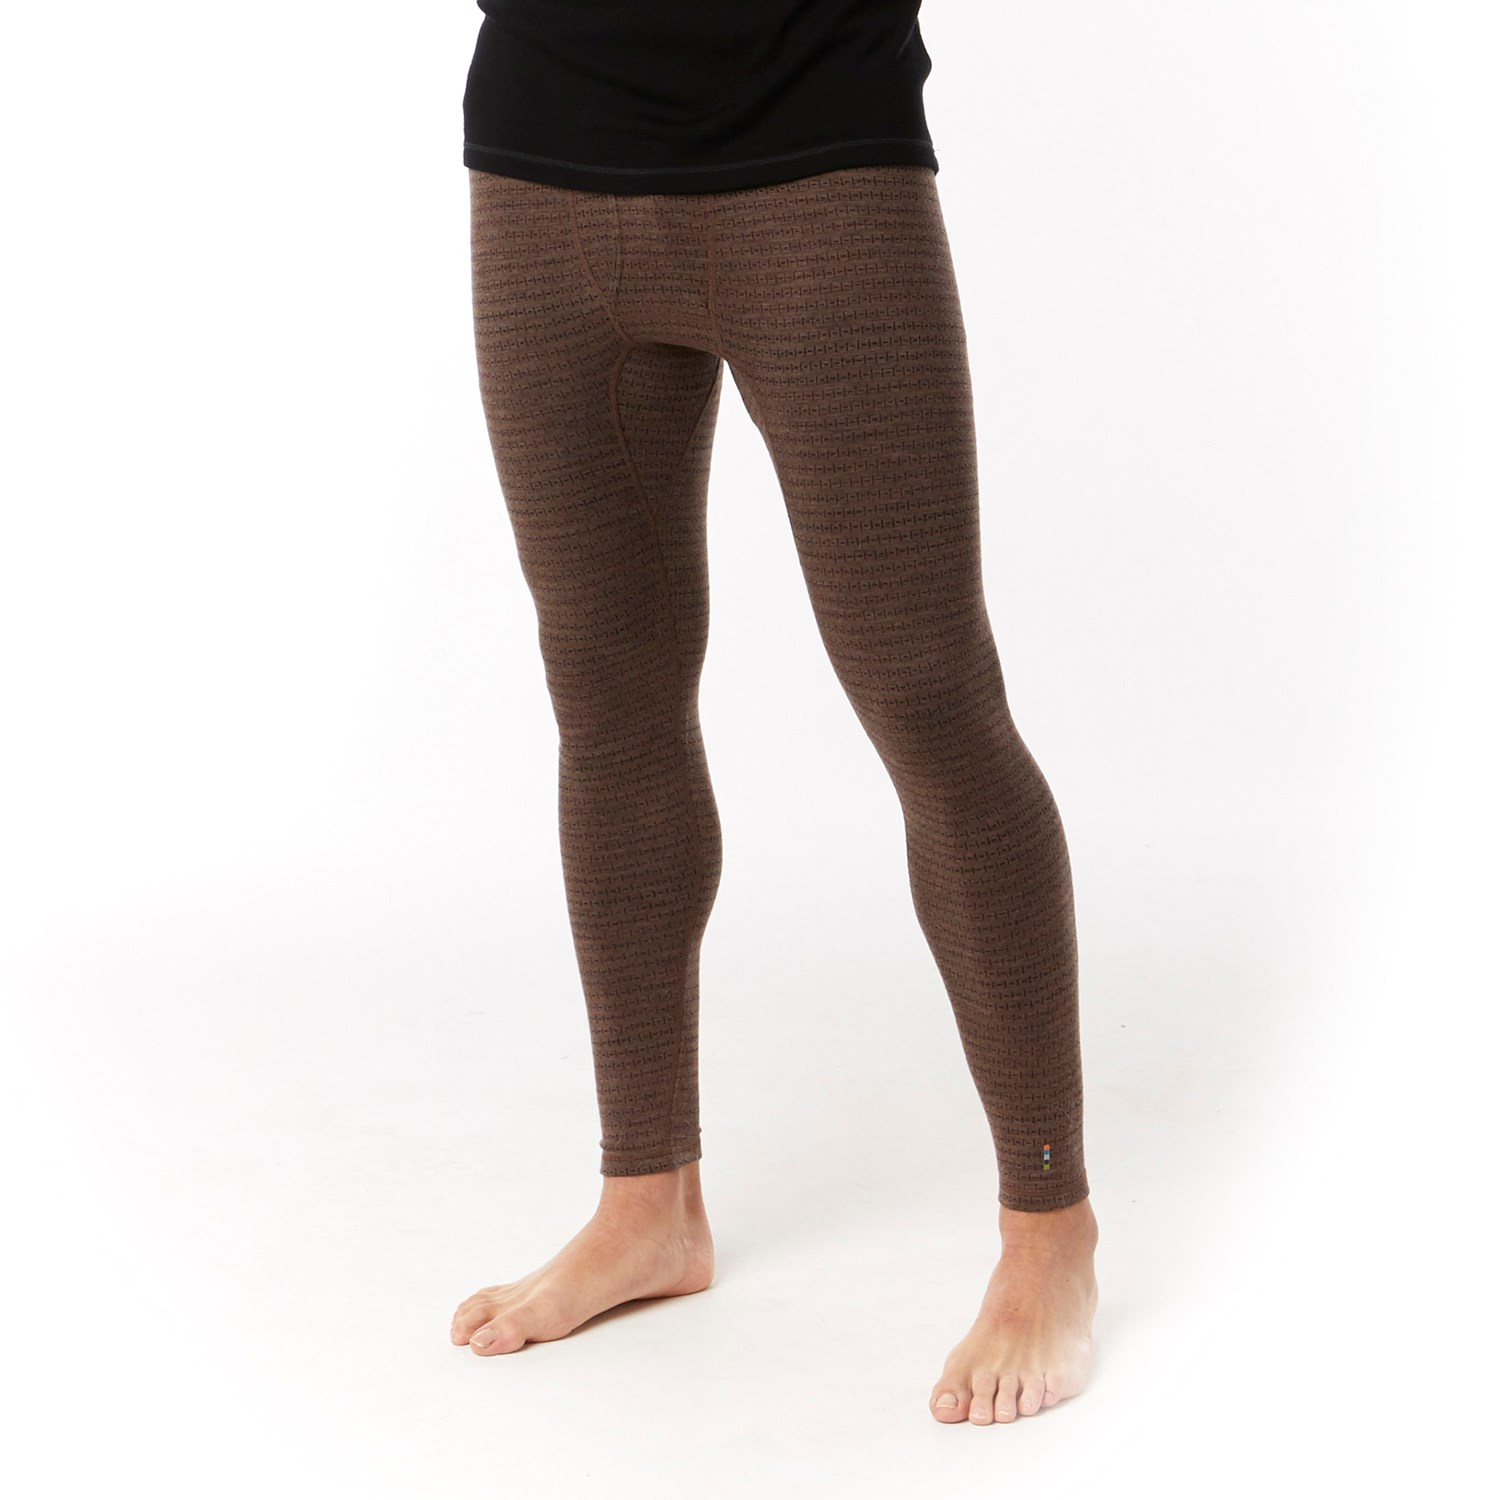 Smartwool MERINO 250 Base Layer BOTTOMS Wool Pants AUTHENTIC Mens SLIM Fit New